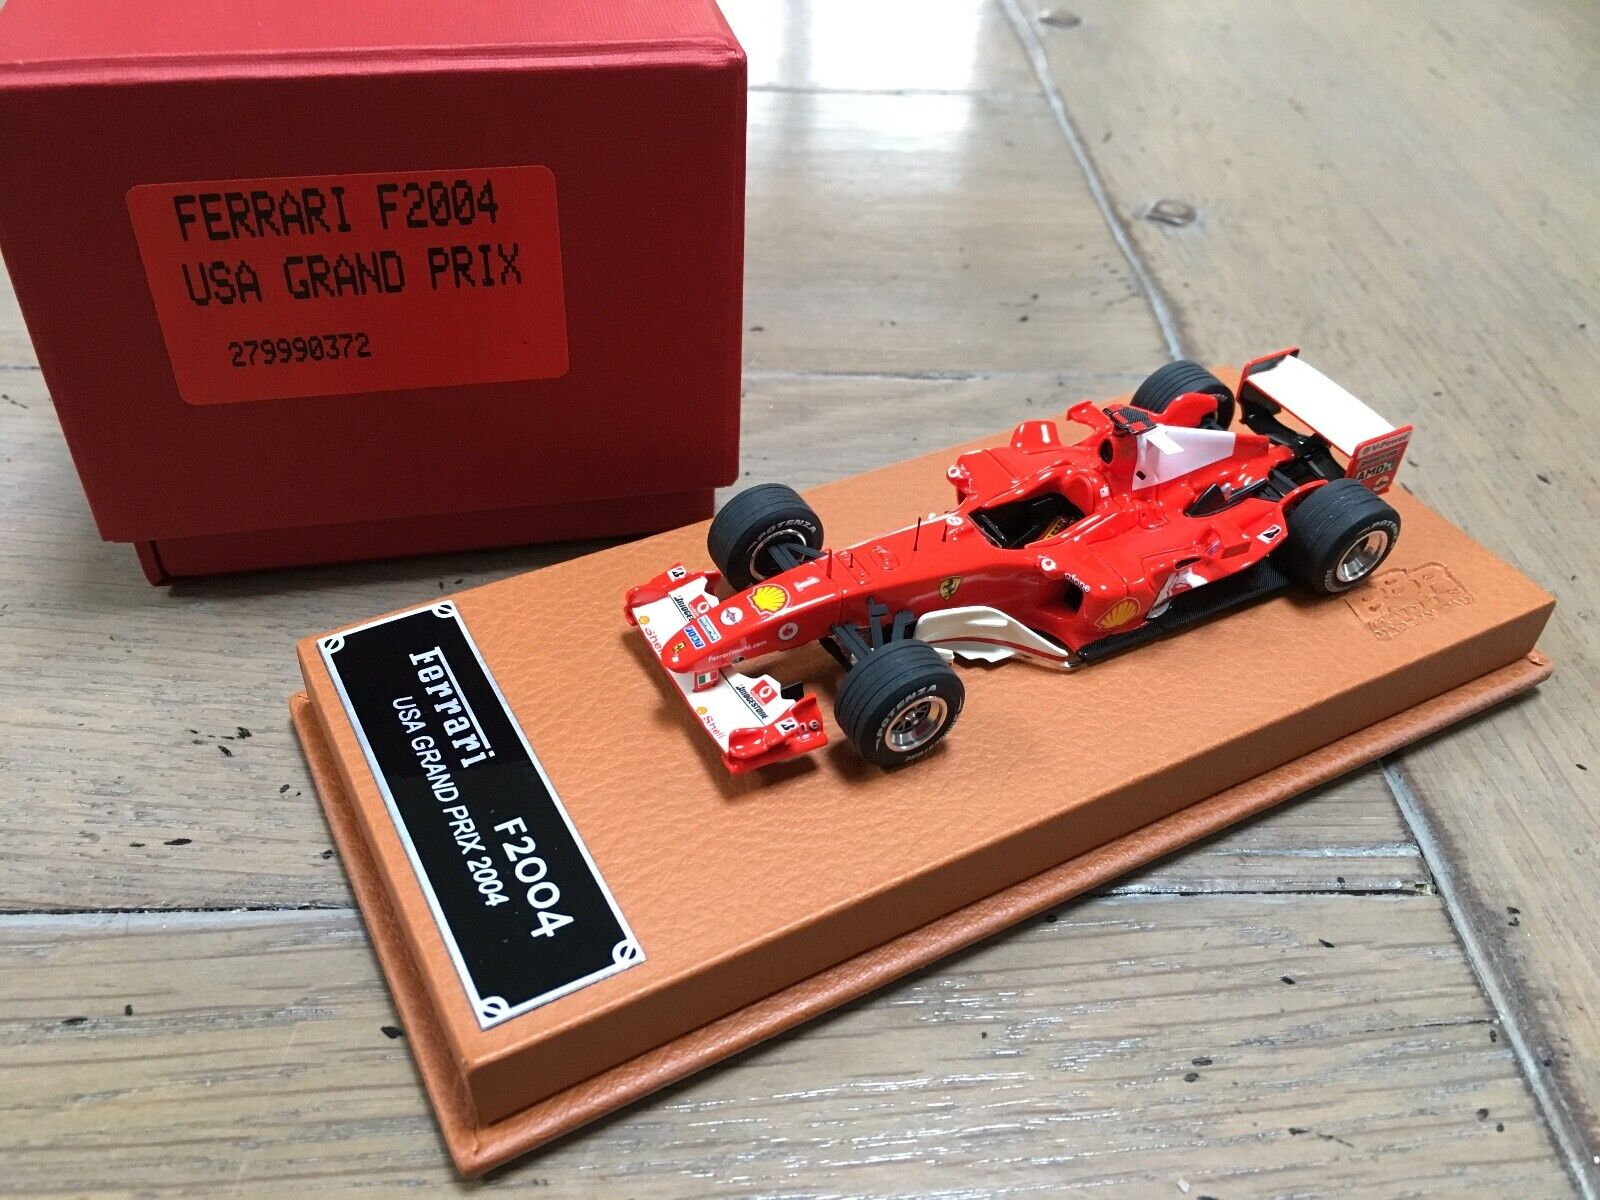 Bbr idea ferrari f2004 f1 schumacher usa gp 2004 rare 1 43 schedoni base